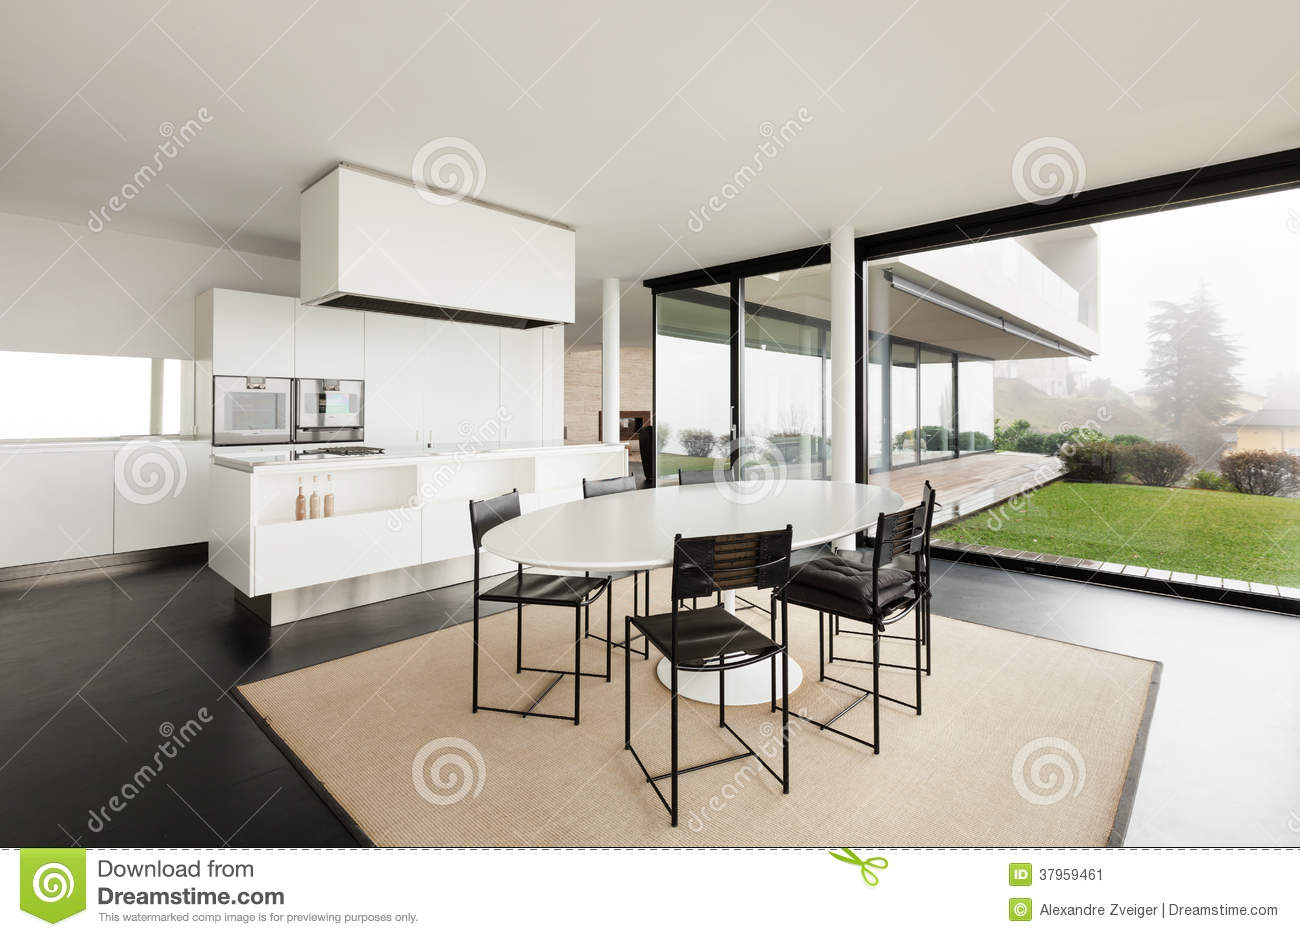 Architecture int rieur d 39 une villa moderne image stock for Villa interieur design